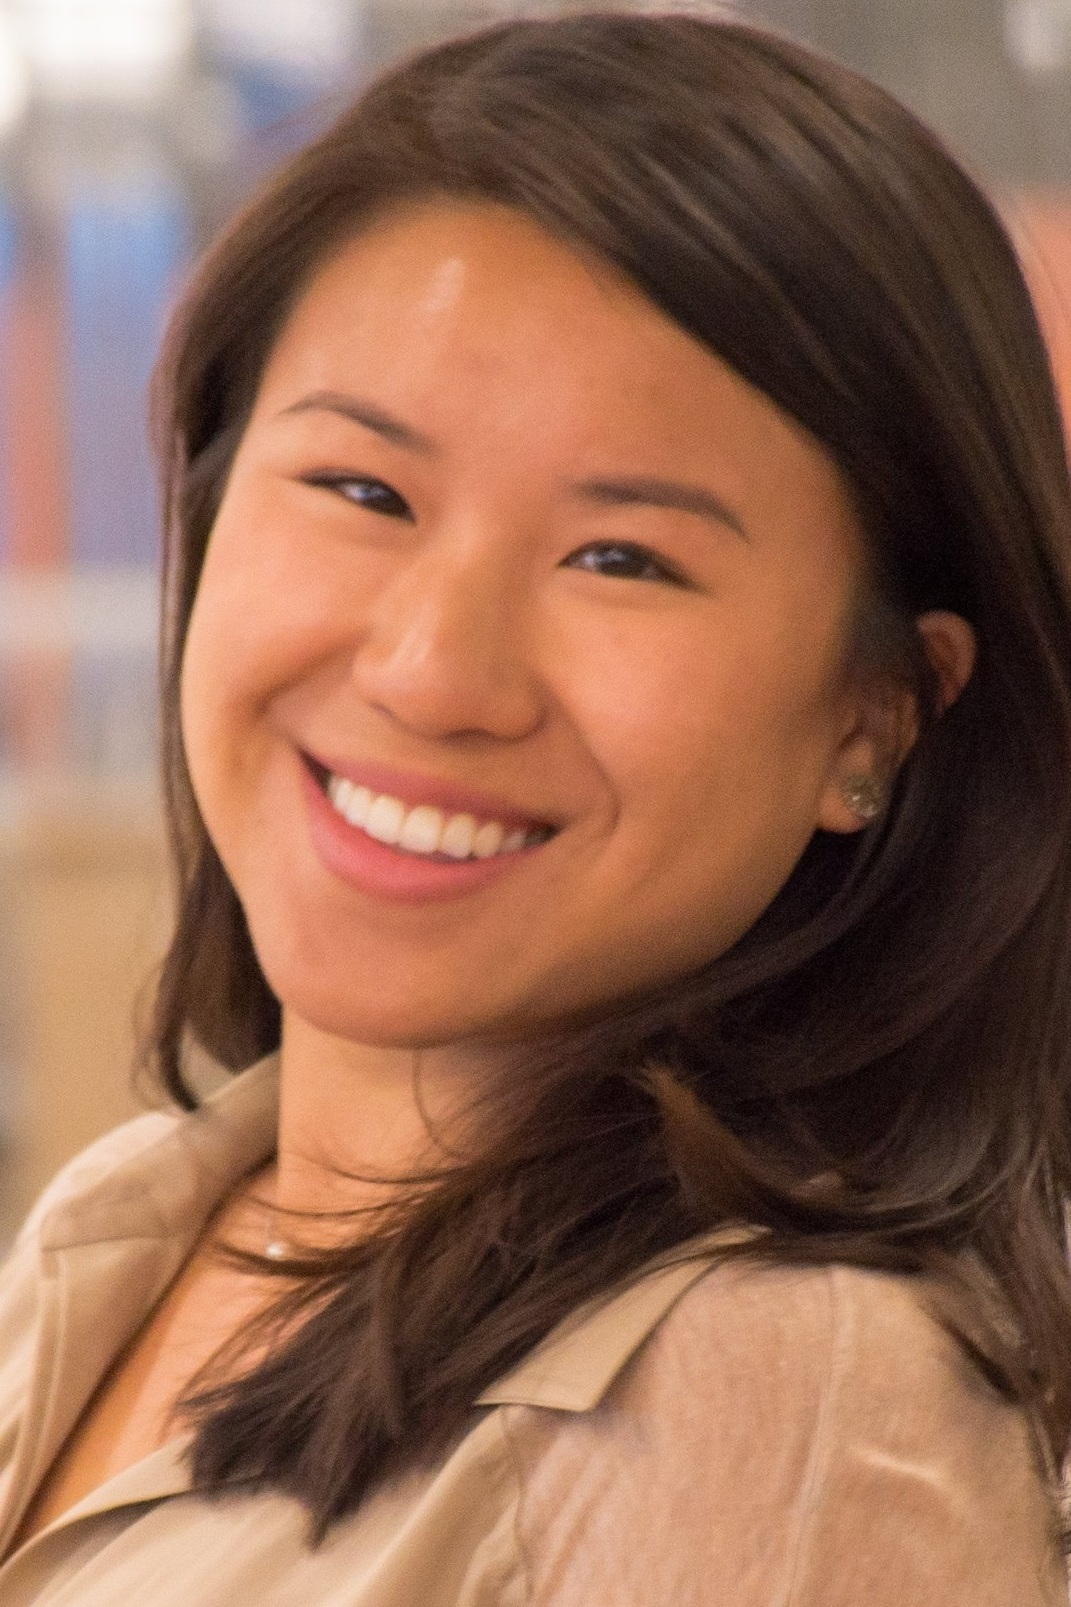 Traci Cheng - HEAD OF OPERATIONS AND PEOPLE, ZOOM.AIOverseeing operations and people at Zoom.ai, Traci ensures that the company is always running smoothly. She acts as a champion for the company culture and advocates for healthy growth of the company.Through her years of experience, she brings a collaborative and entrepreneurial spirit to the team, powered by her diverse experience of managing operations, HR, marketing, business development and support initiatives across a handful of Canadian tech startups. Traci is an advocate for diverse and inclusive workplaces and active in mentorship throughout the tech ecosystem.